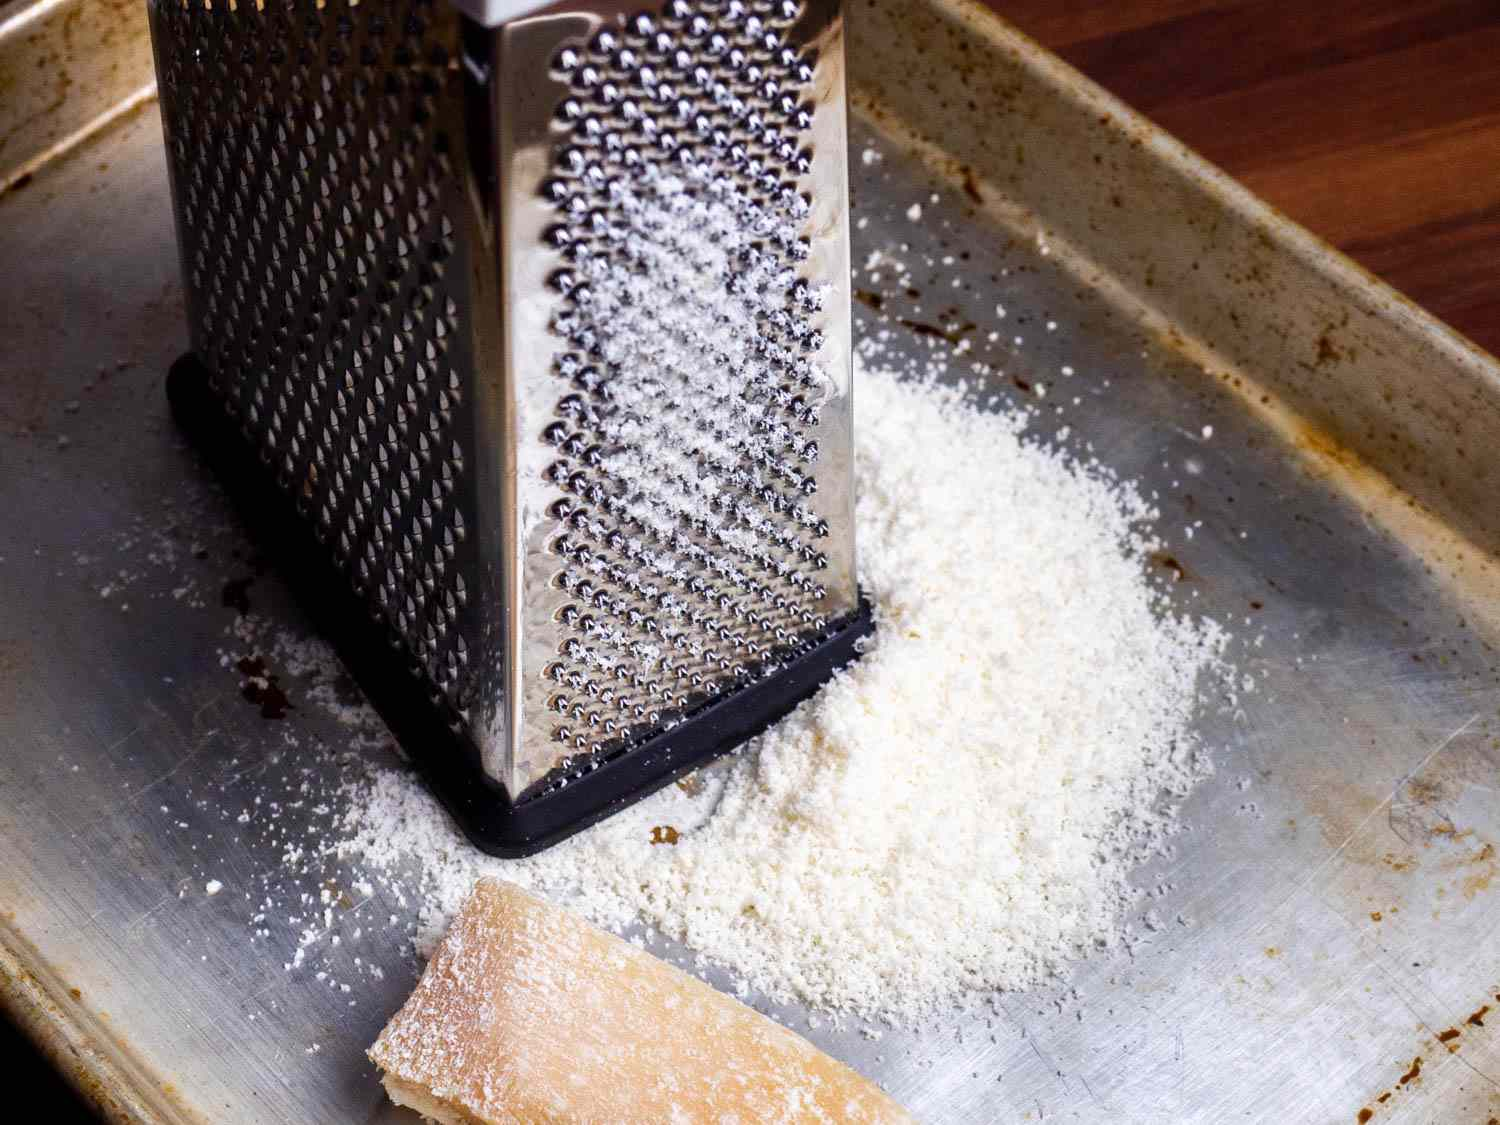 A box grater with a pile of finely grated Parmesan next to it